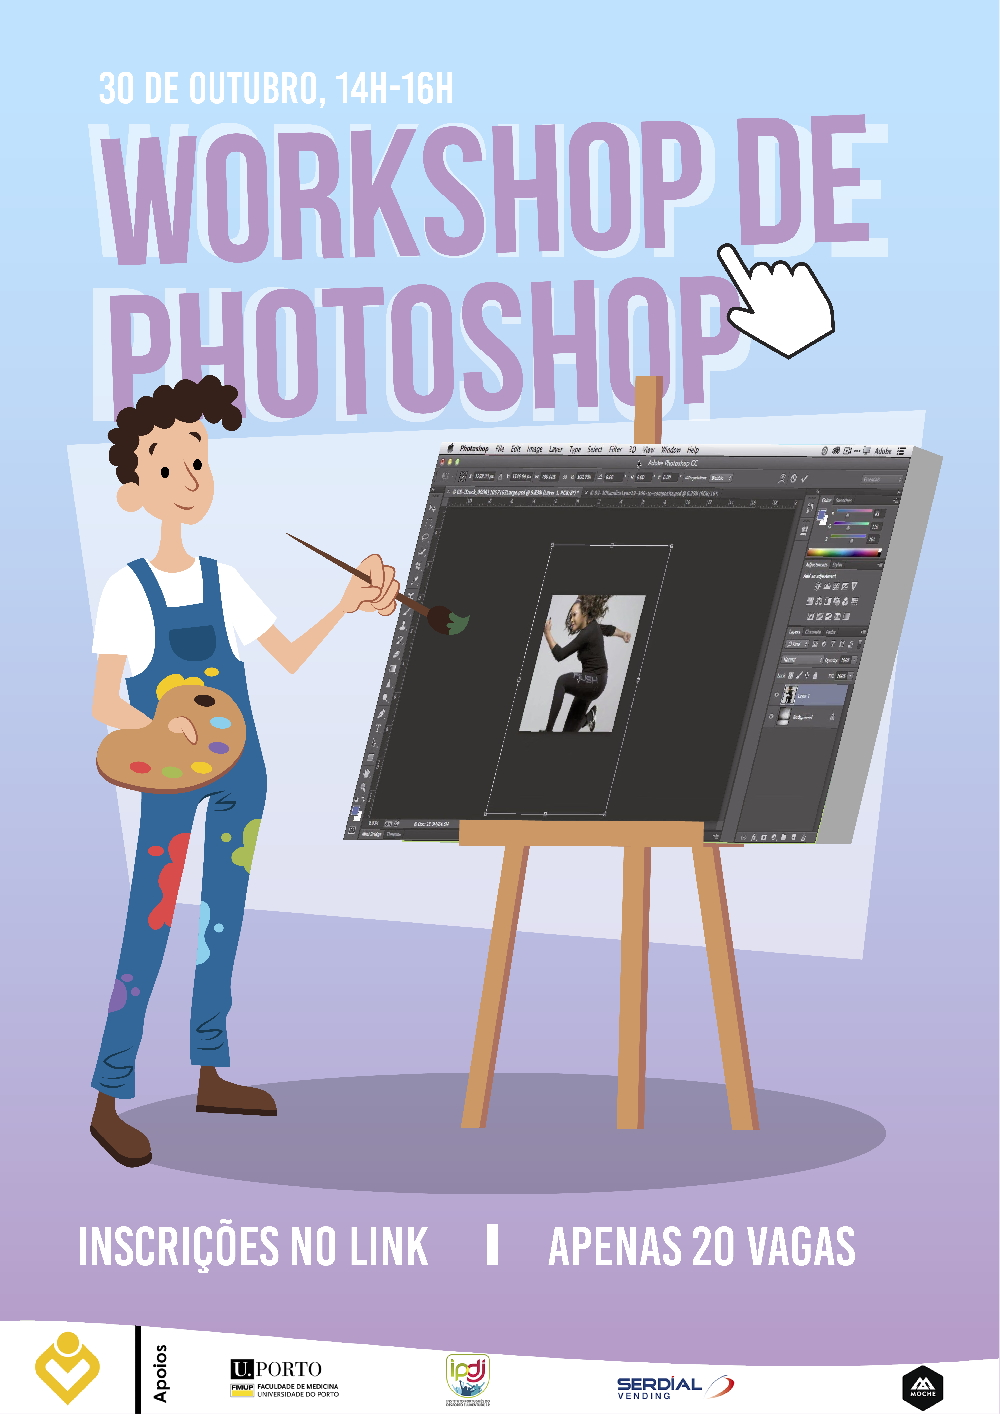 Workshop de Photoshop